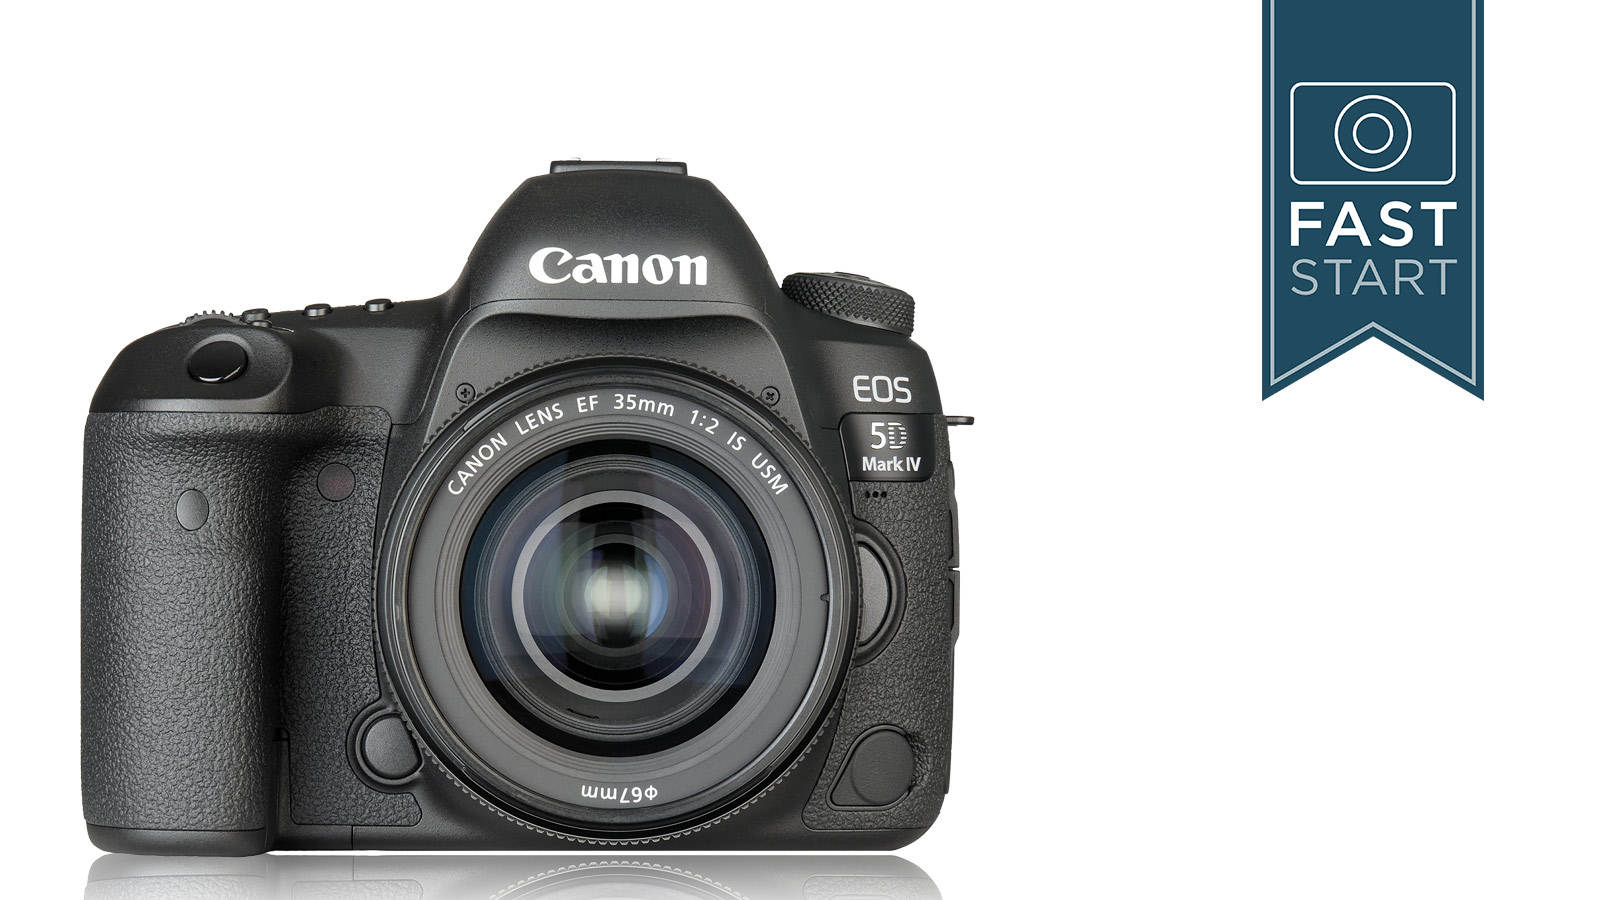 Canon 5D Mark IV Fast Start